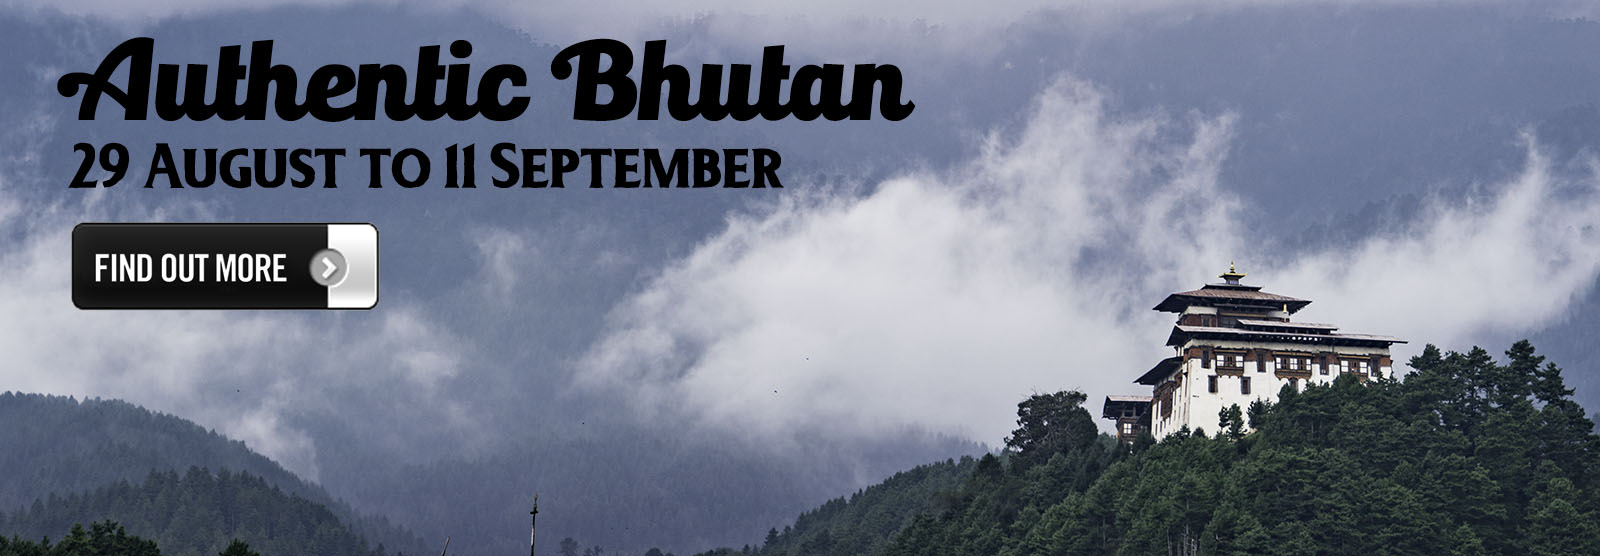 Authentic Bhutan